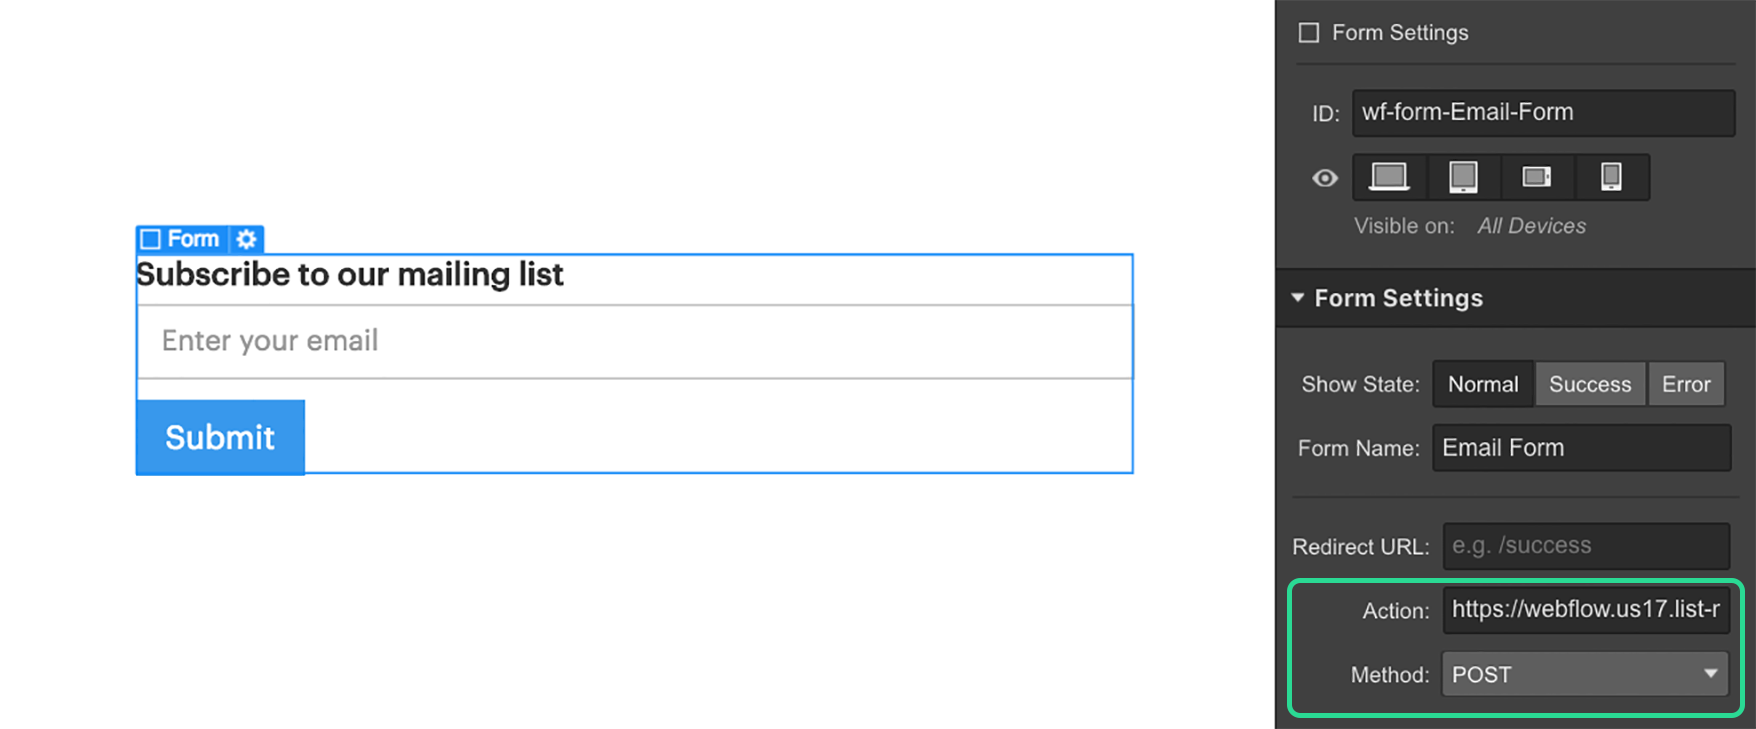 Connect your Webflow form to a Mailchimp list